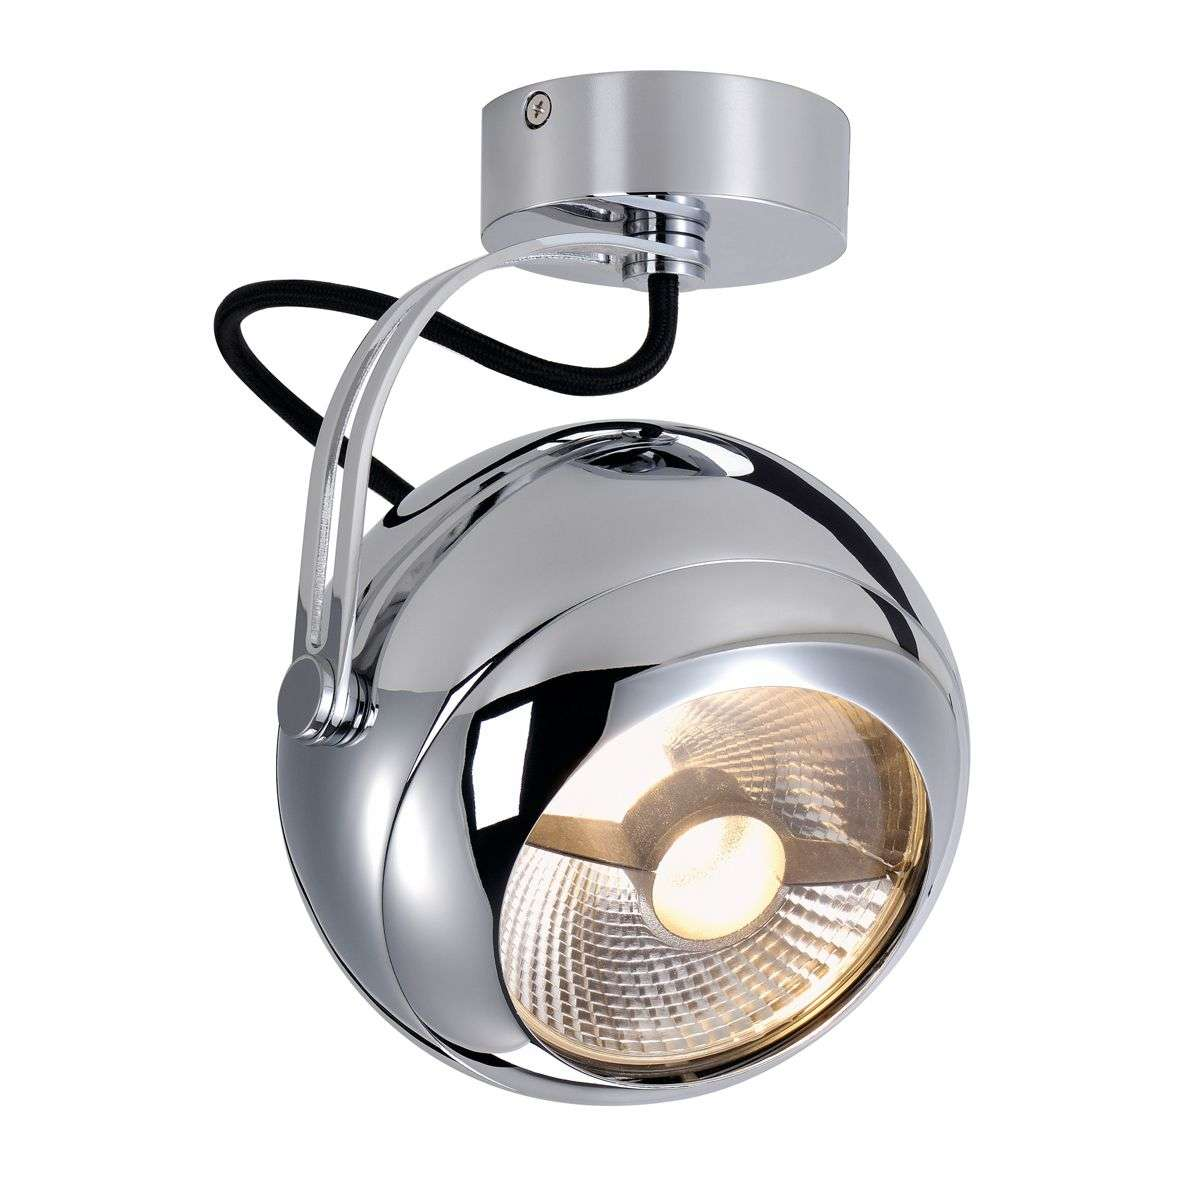 Plafondlamp LIGHT EYE-5502078-31